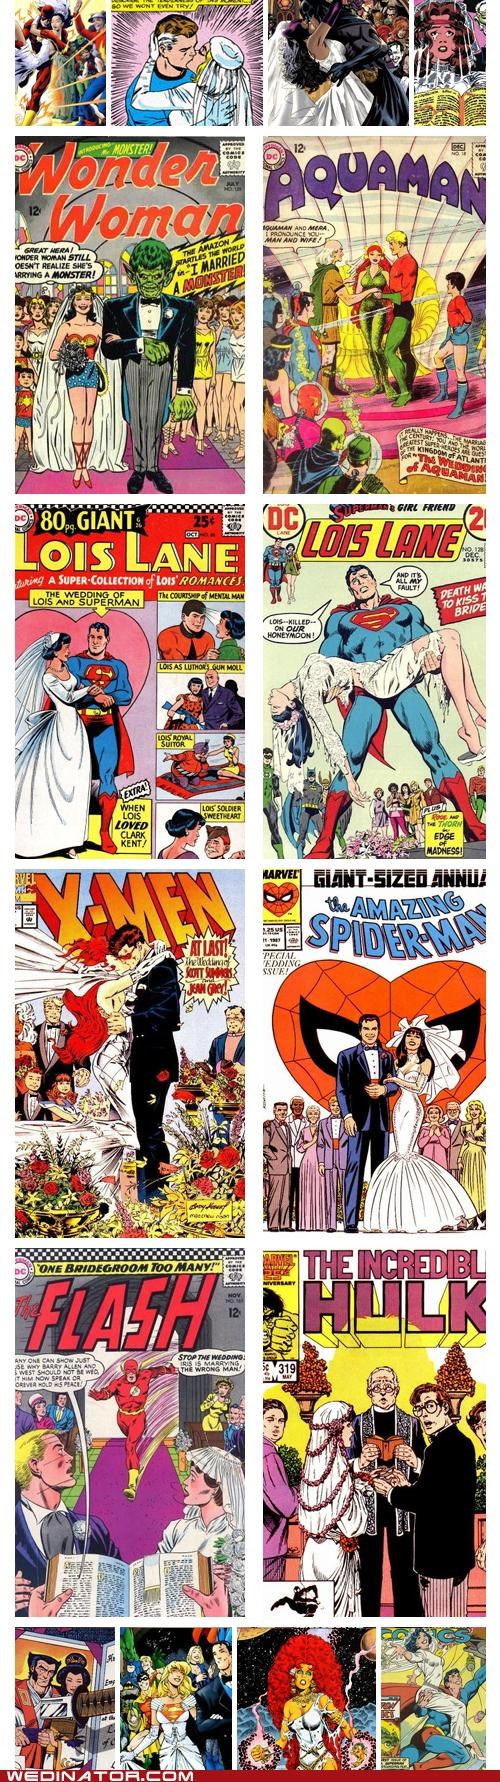 batman comic books comics funny wedding photos Hall of Fame Spider-Man superheroes superman x men